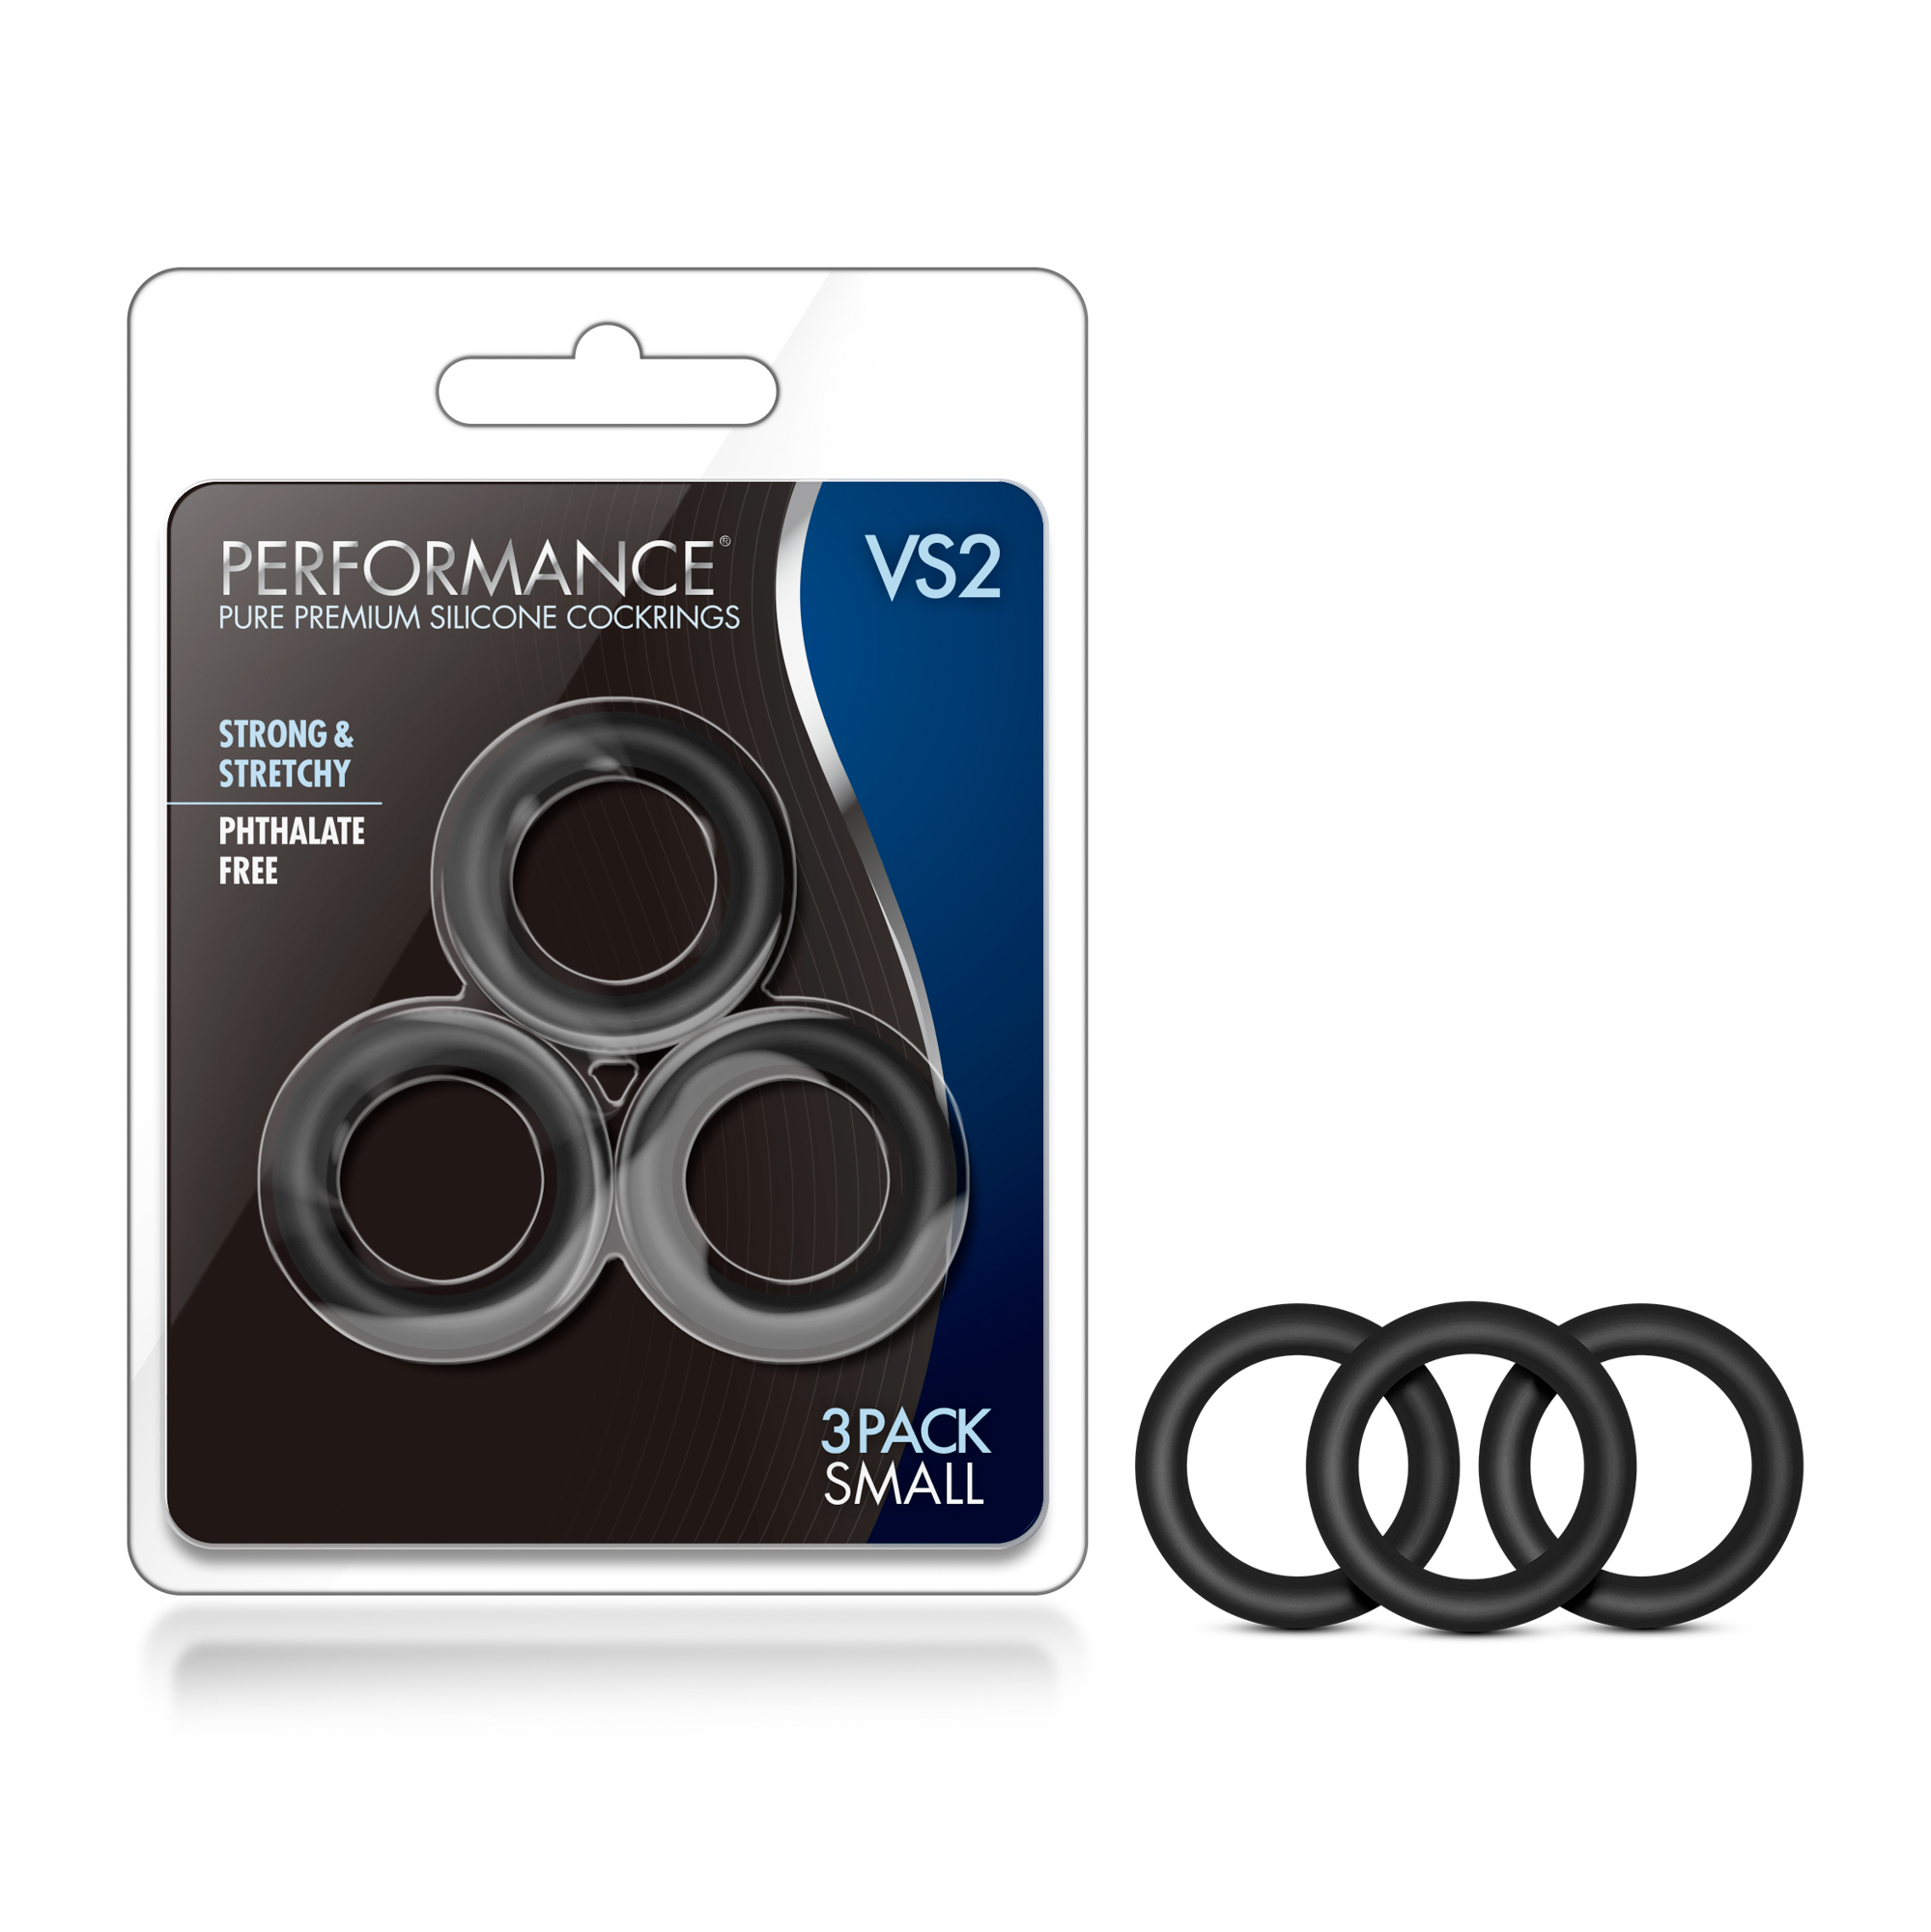 Performance - VS2 Pure Premium Silicone Cock Rings - Small - Black